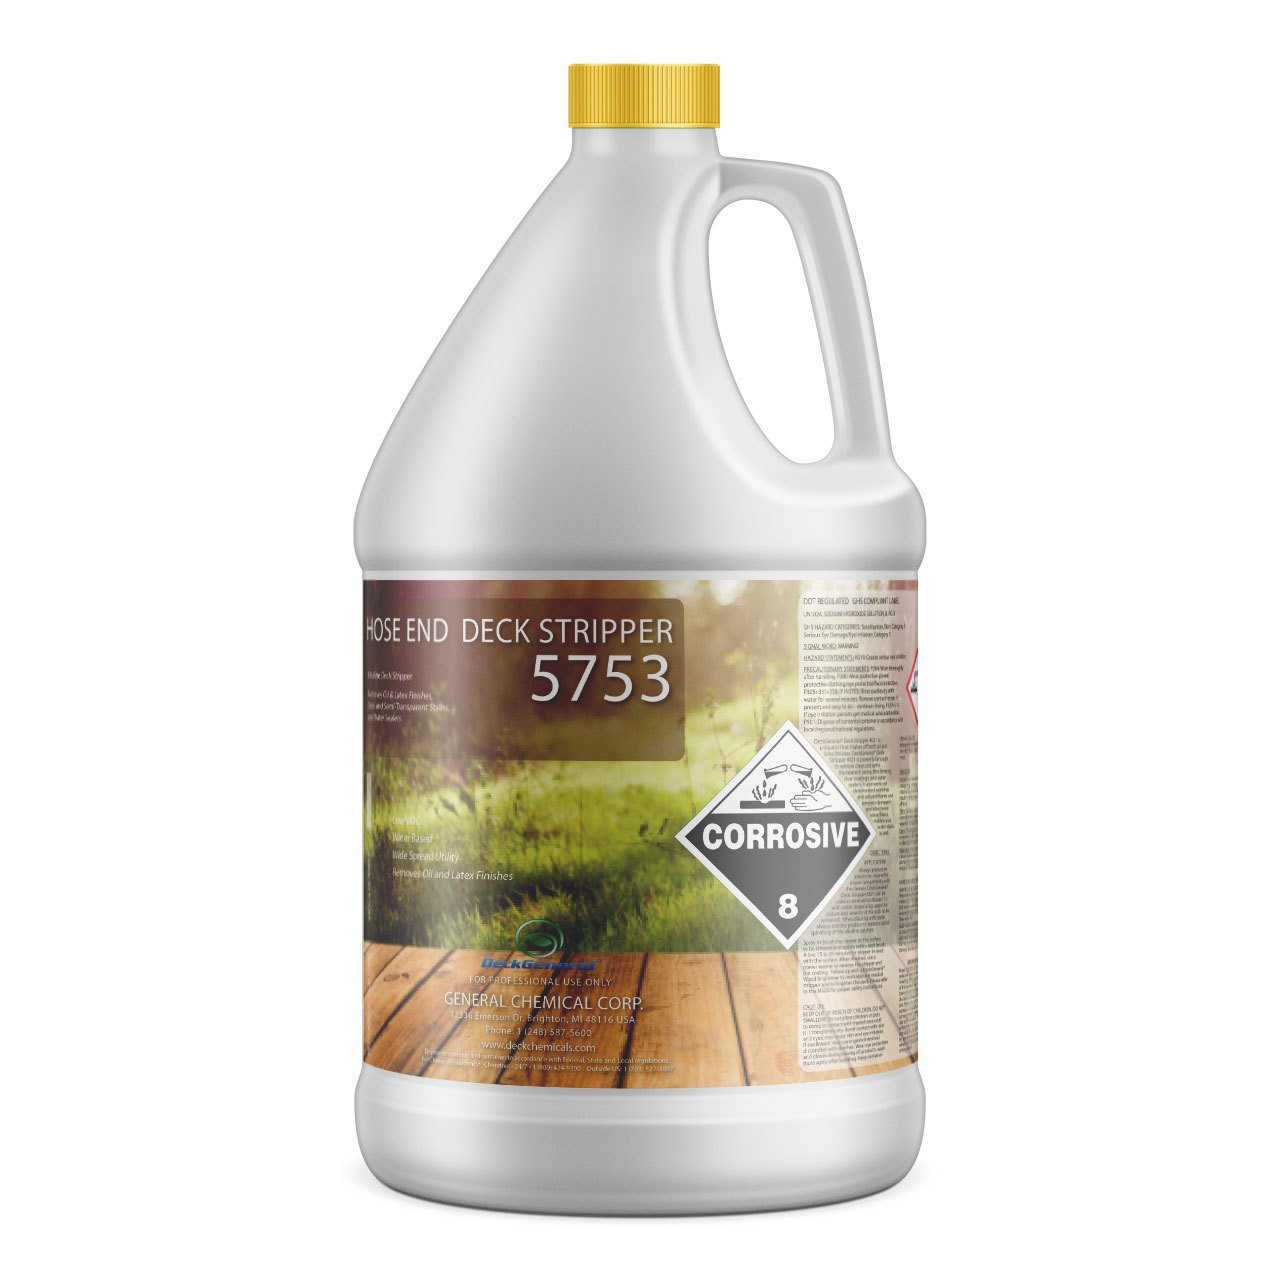 Deck Stripper 5753 by DeckGeneral | Removes Stains, Finishes, Coatings, Sealers & Paint | Easy to Apply | Works on Multiple Wood Surfaces | 0 VOC | Water Based Formula | 1 Gallon